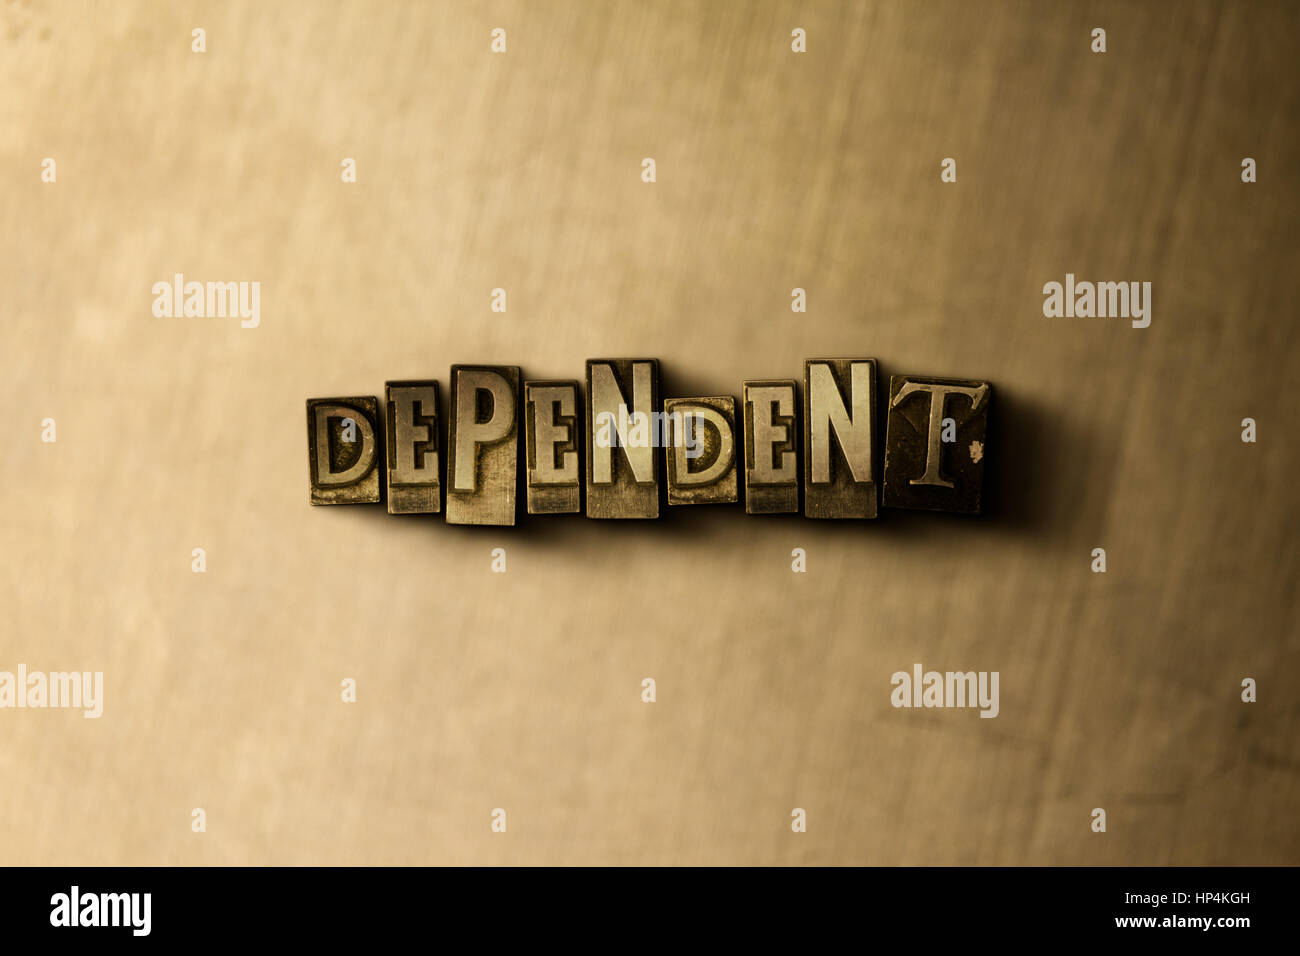 DEPENDENT - close-up of grungy vintage typeset word on metal backdrop. Royalty free stock illustration.  Can be - Stock Image